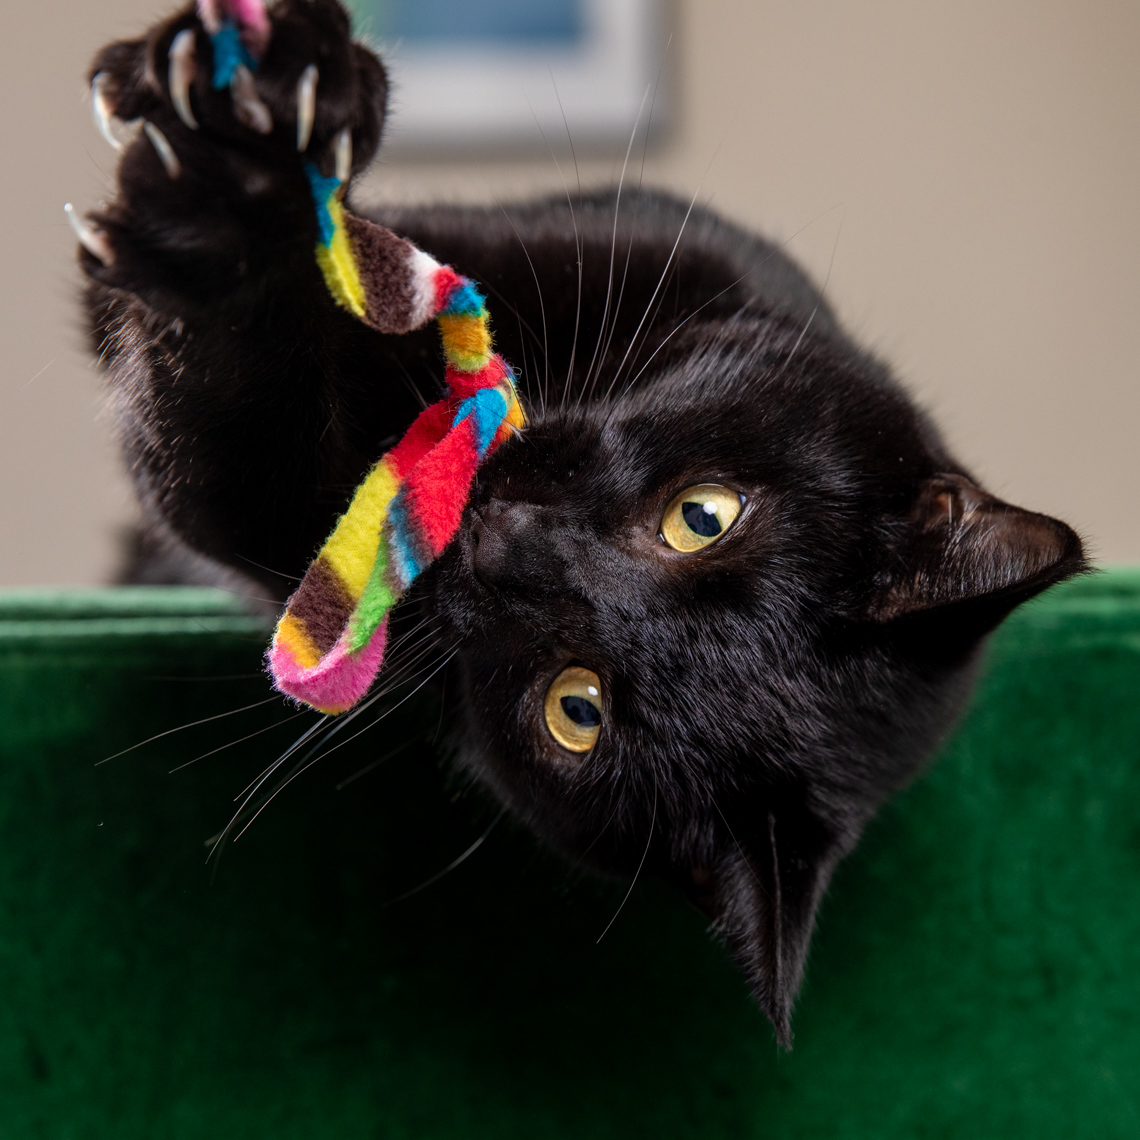 Pet Lifestyle Photography | Black Cat Holding Toy by Mark Rogers